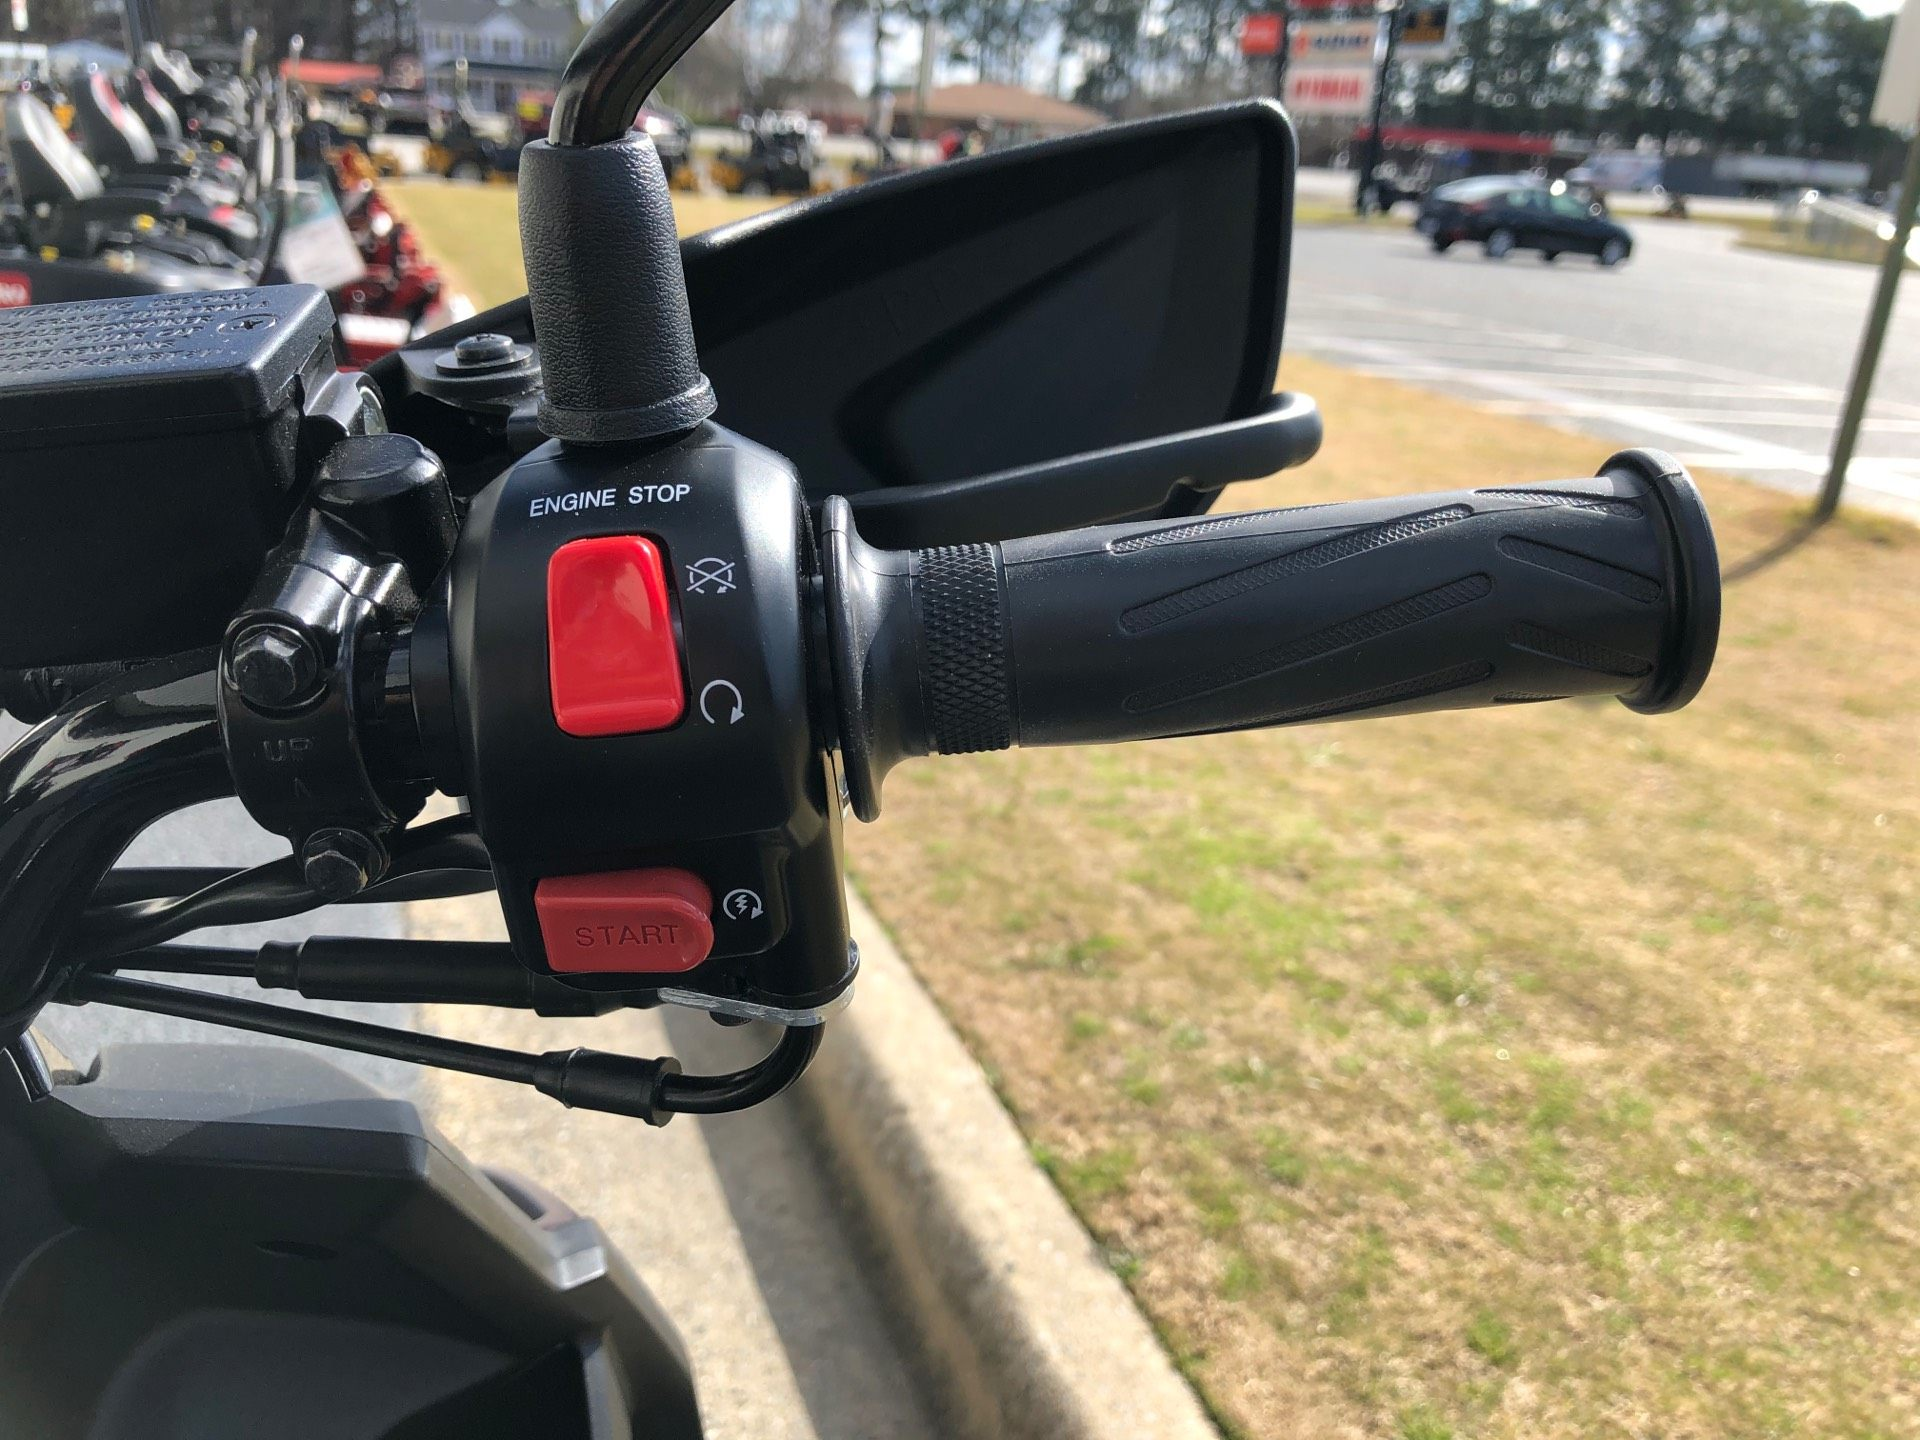 2020 Yamaha Zuma 125 in Greenville, North Carolina - Photo 22